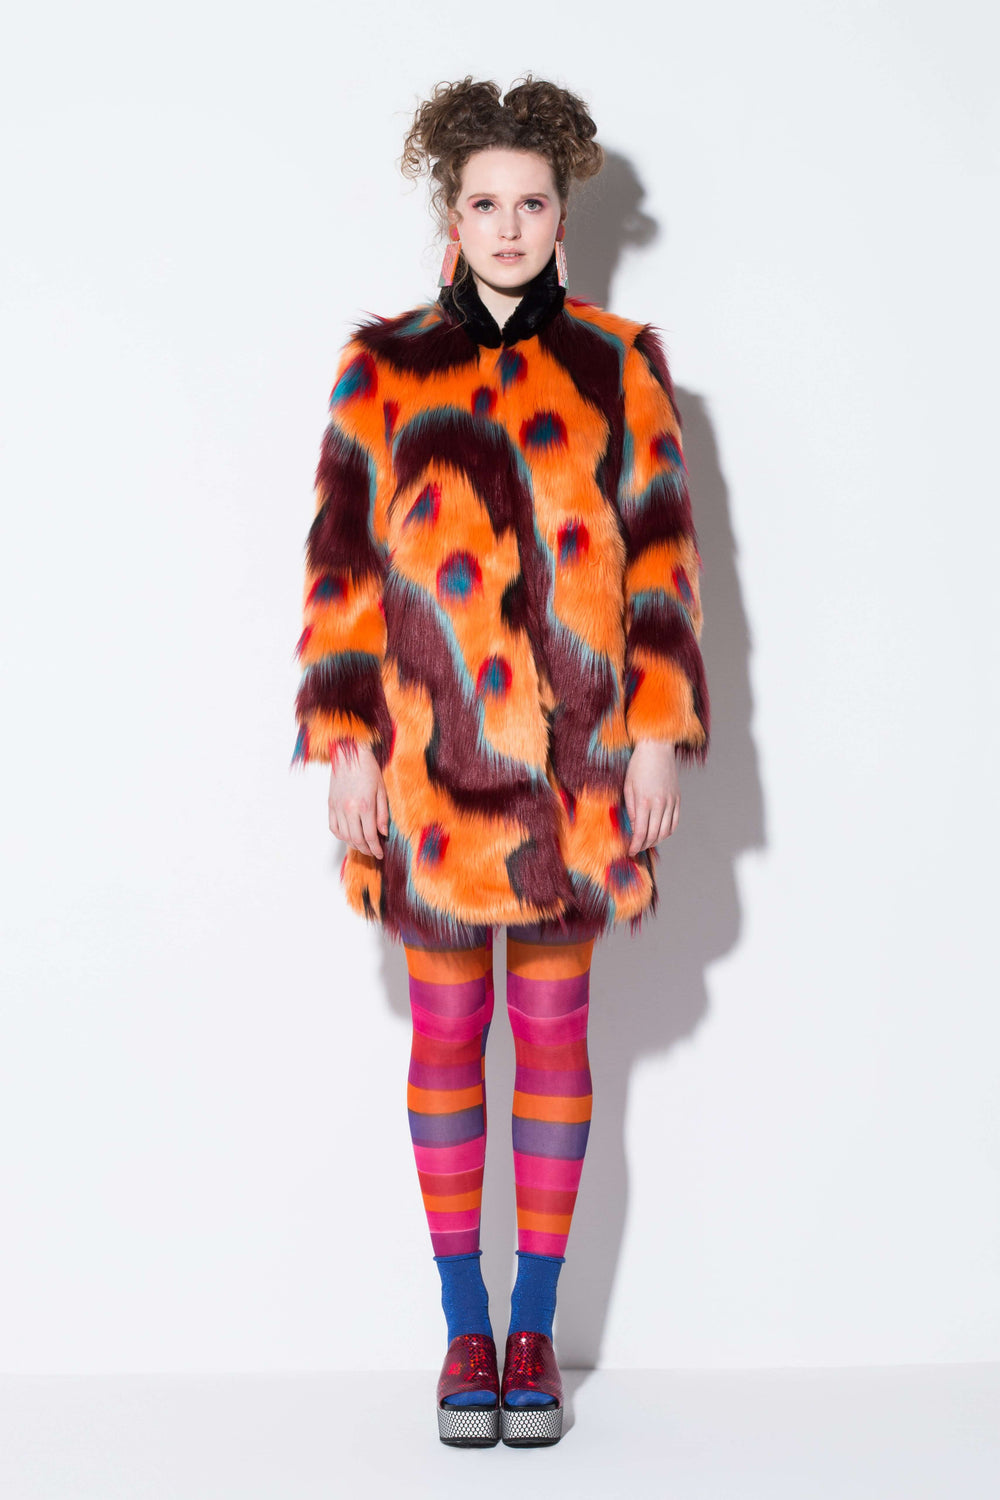 WaWa throw on coat| an easy wear faux fur coat in ORANGE desert pattern from jin & yin styled with hand-painted tights front view